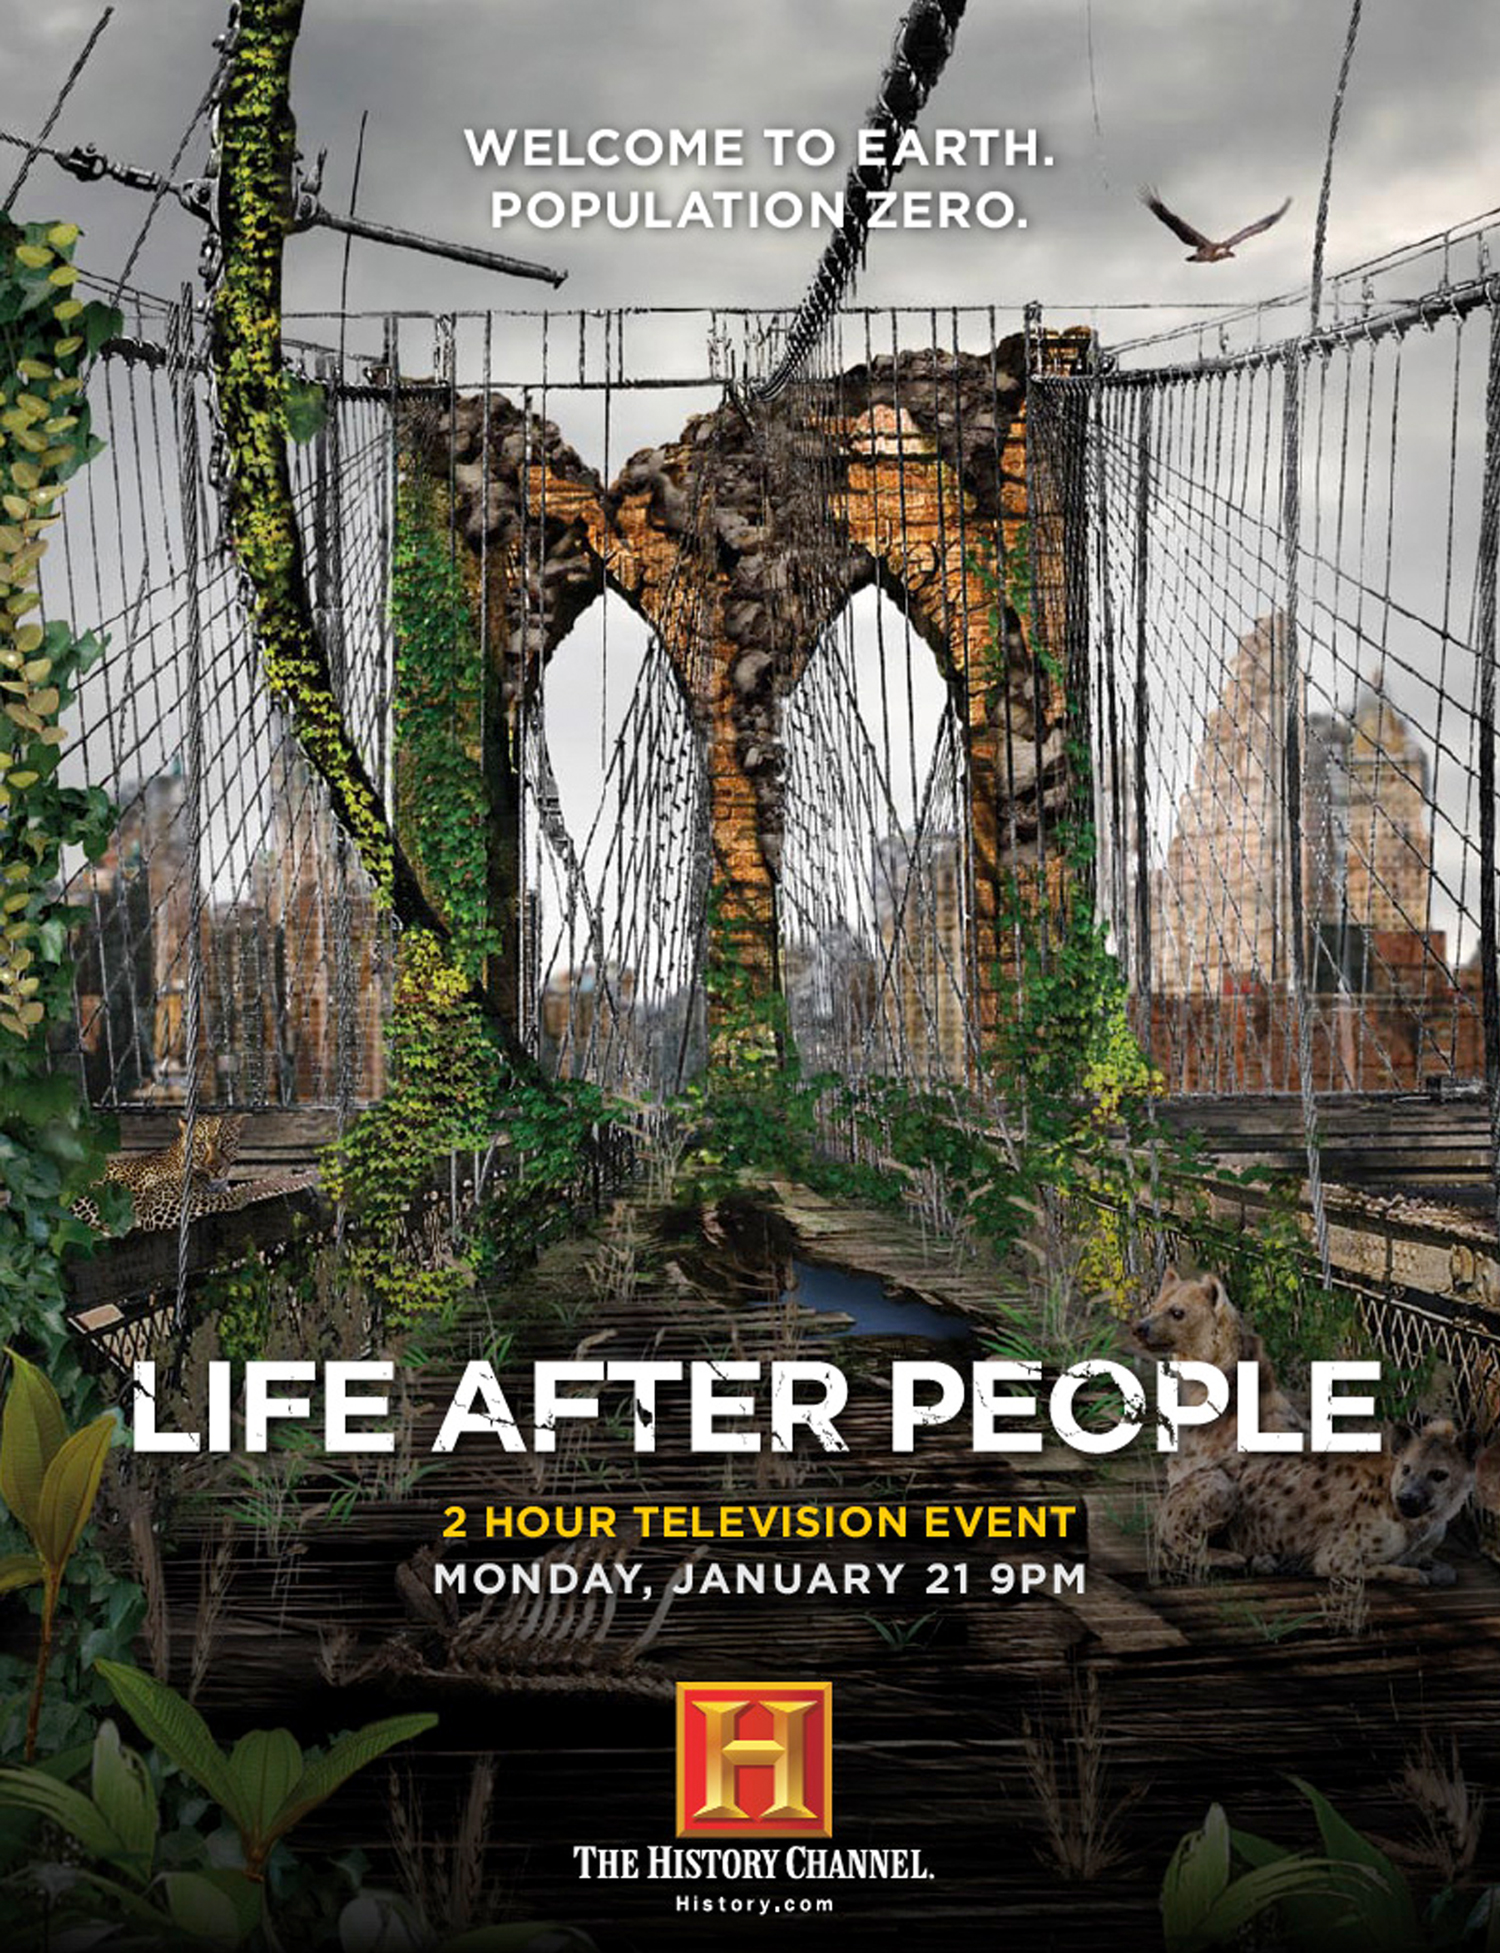 Life After People Advertisement